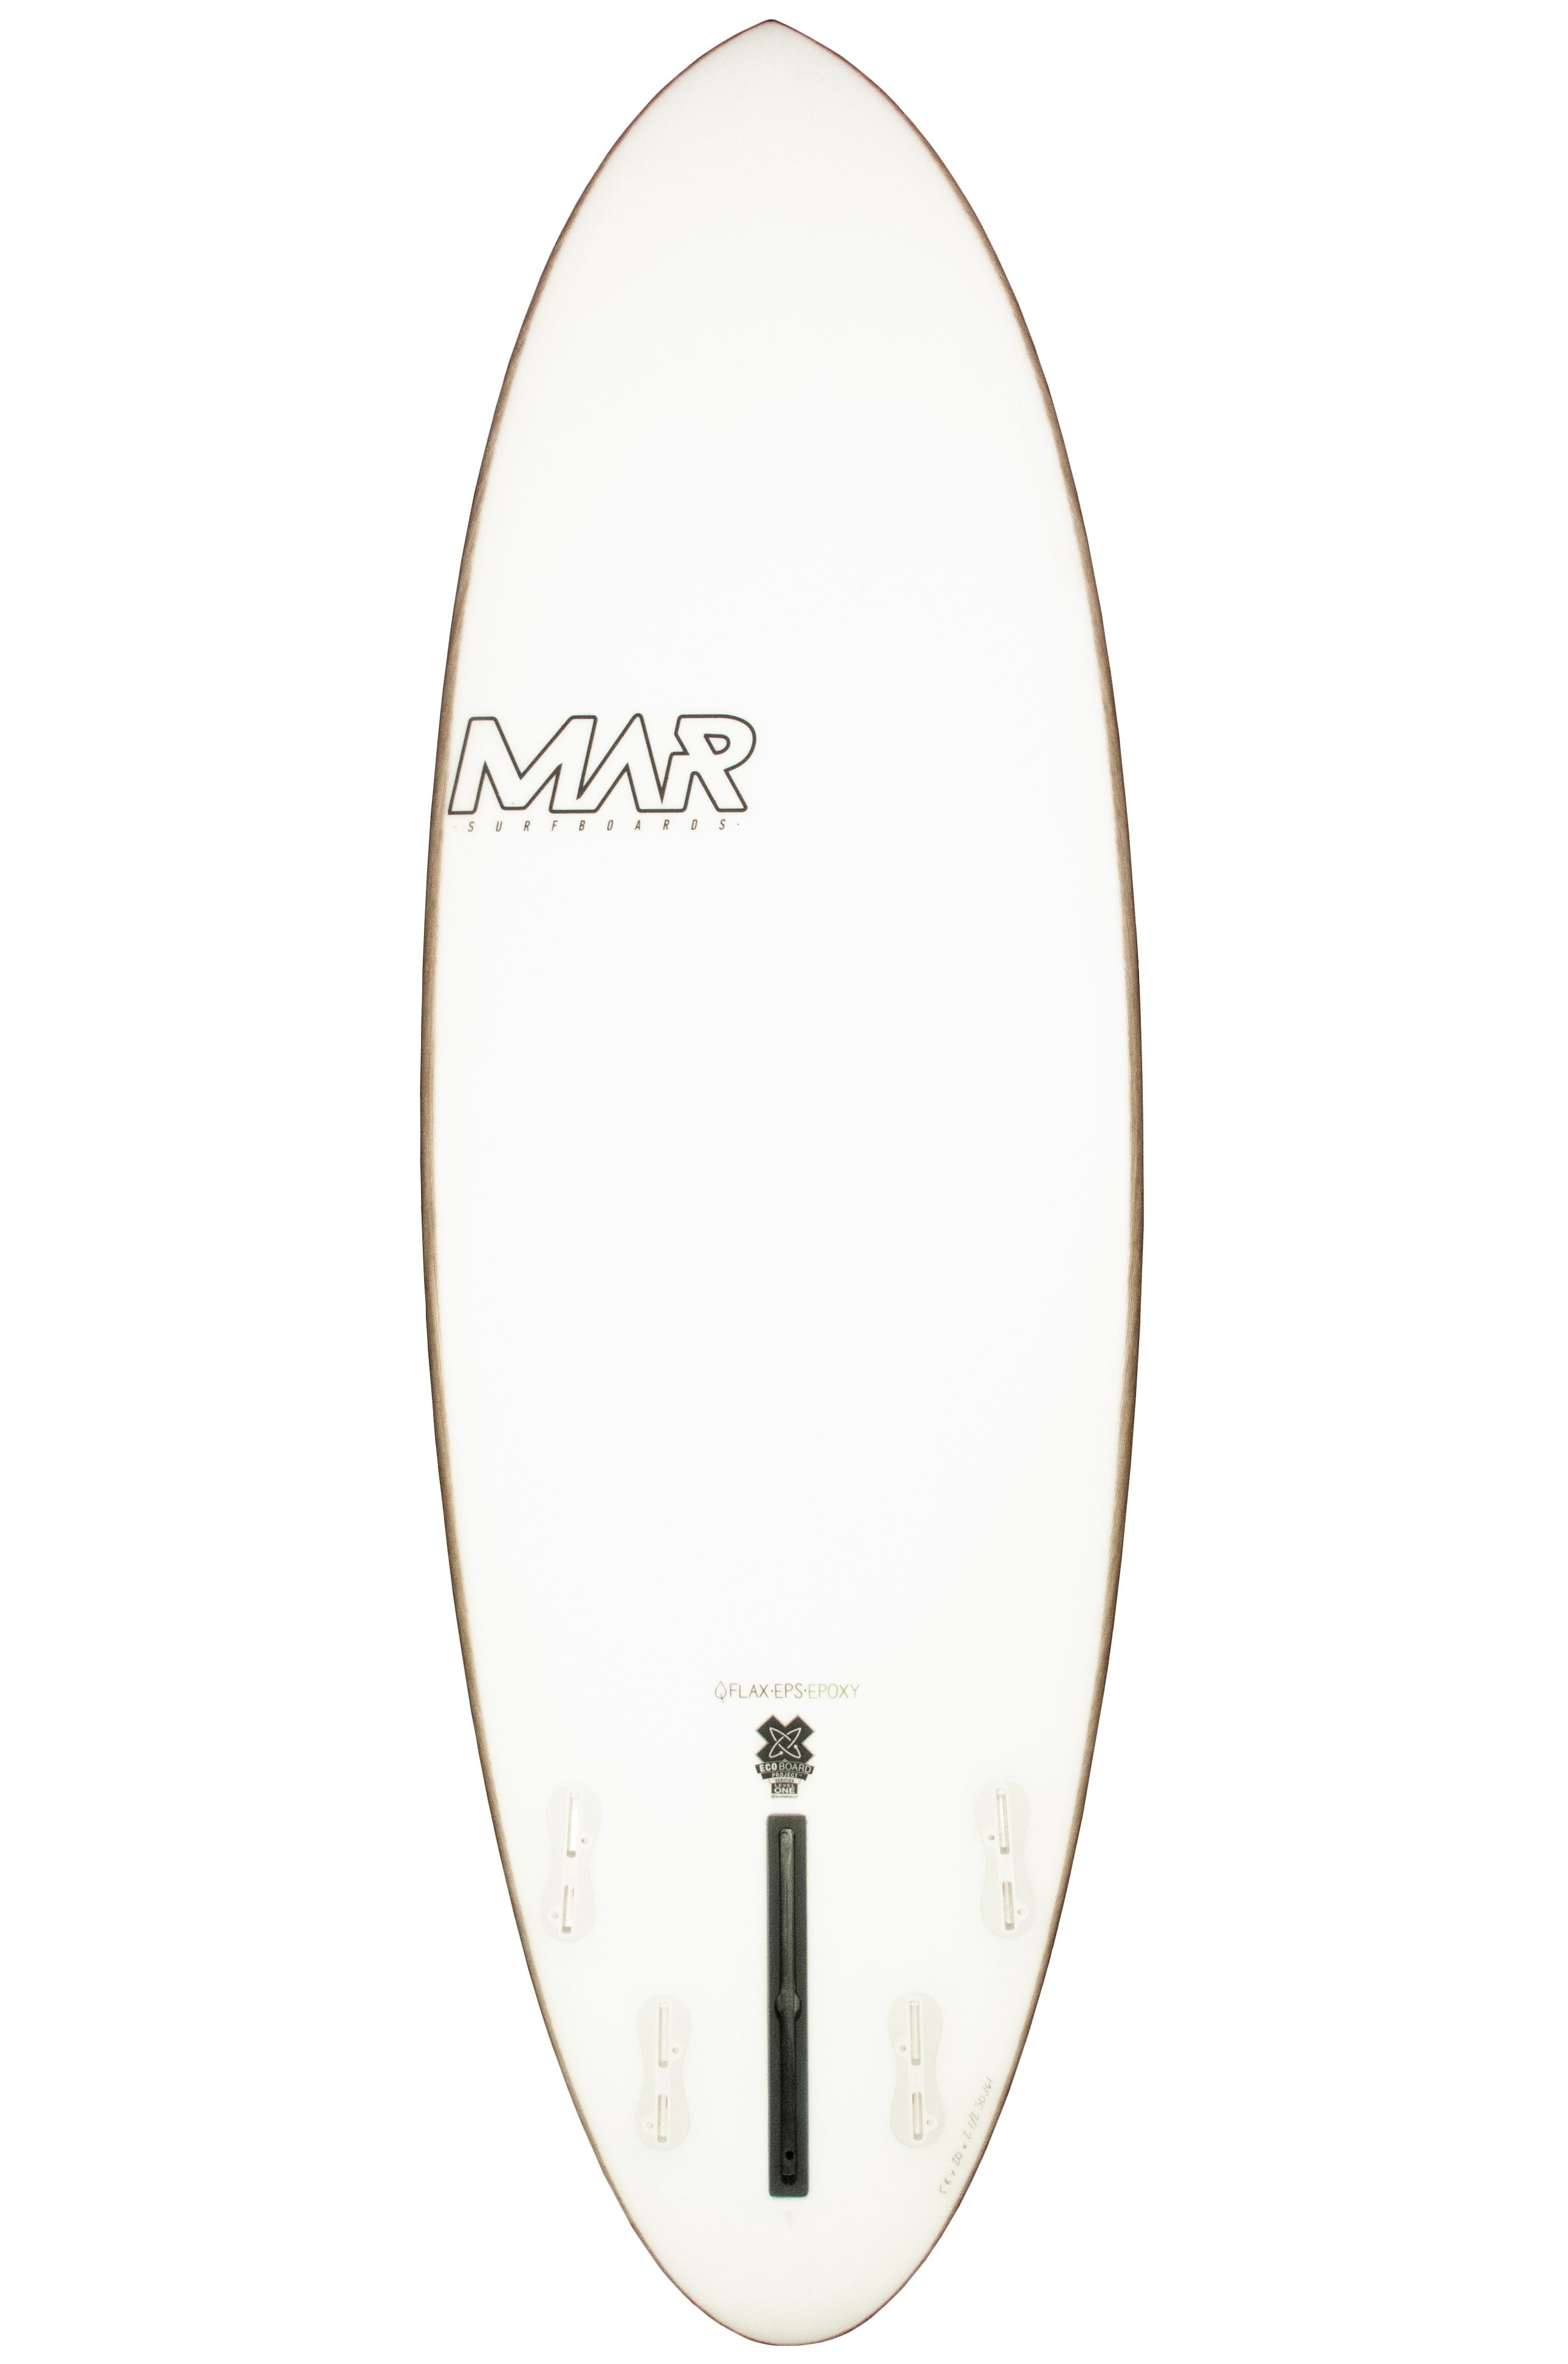 Prancha Surf Mar THE 1 2 4 Round Pin Tail - Color 4 + 1 6ft0